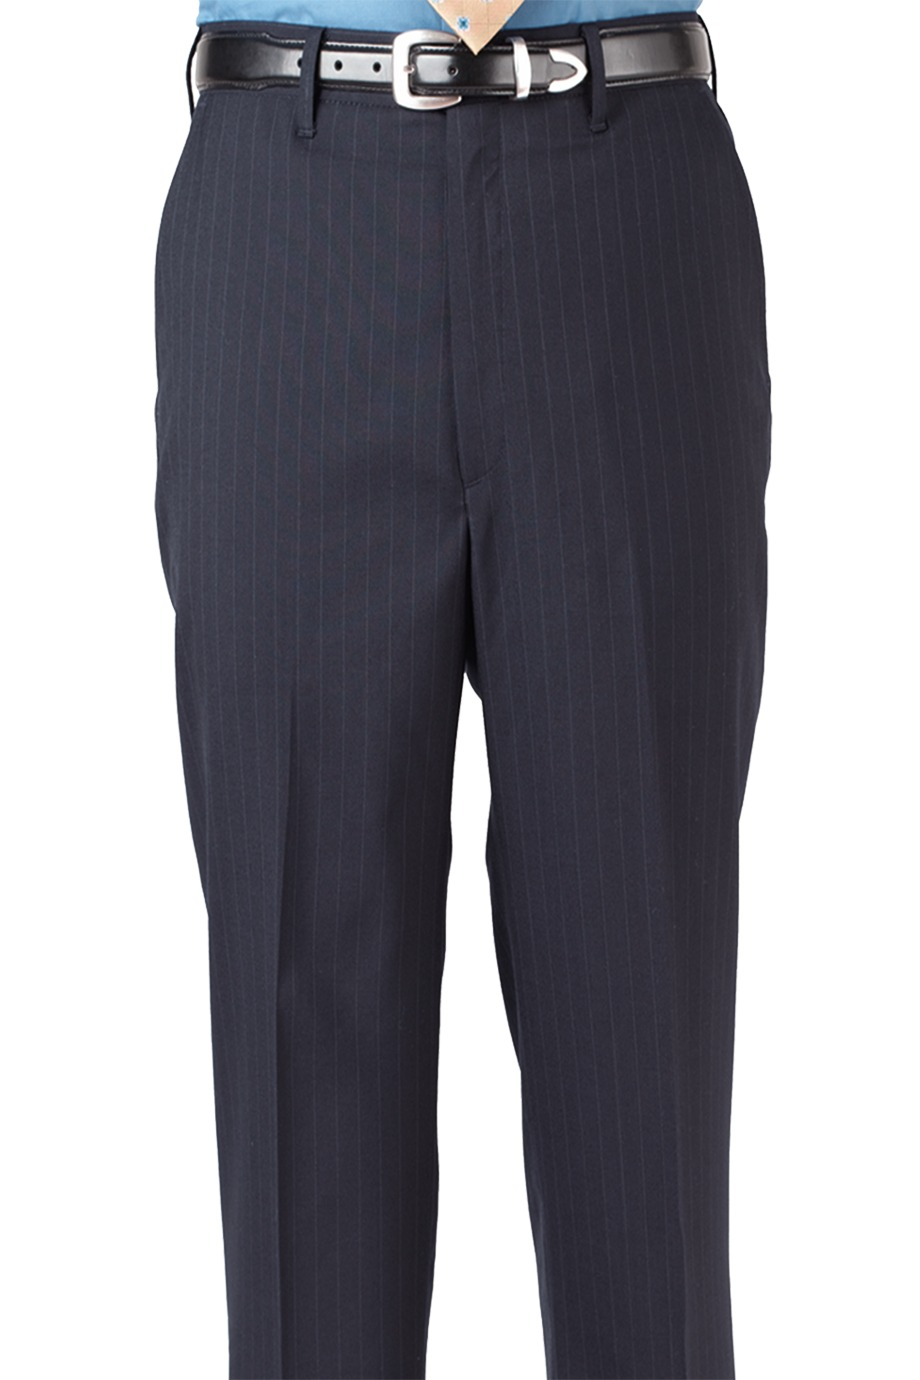 Edwards Garment 2560 - Men's Pinstripe Flat Front Pant